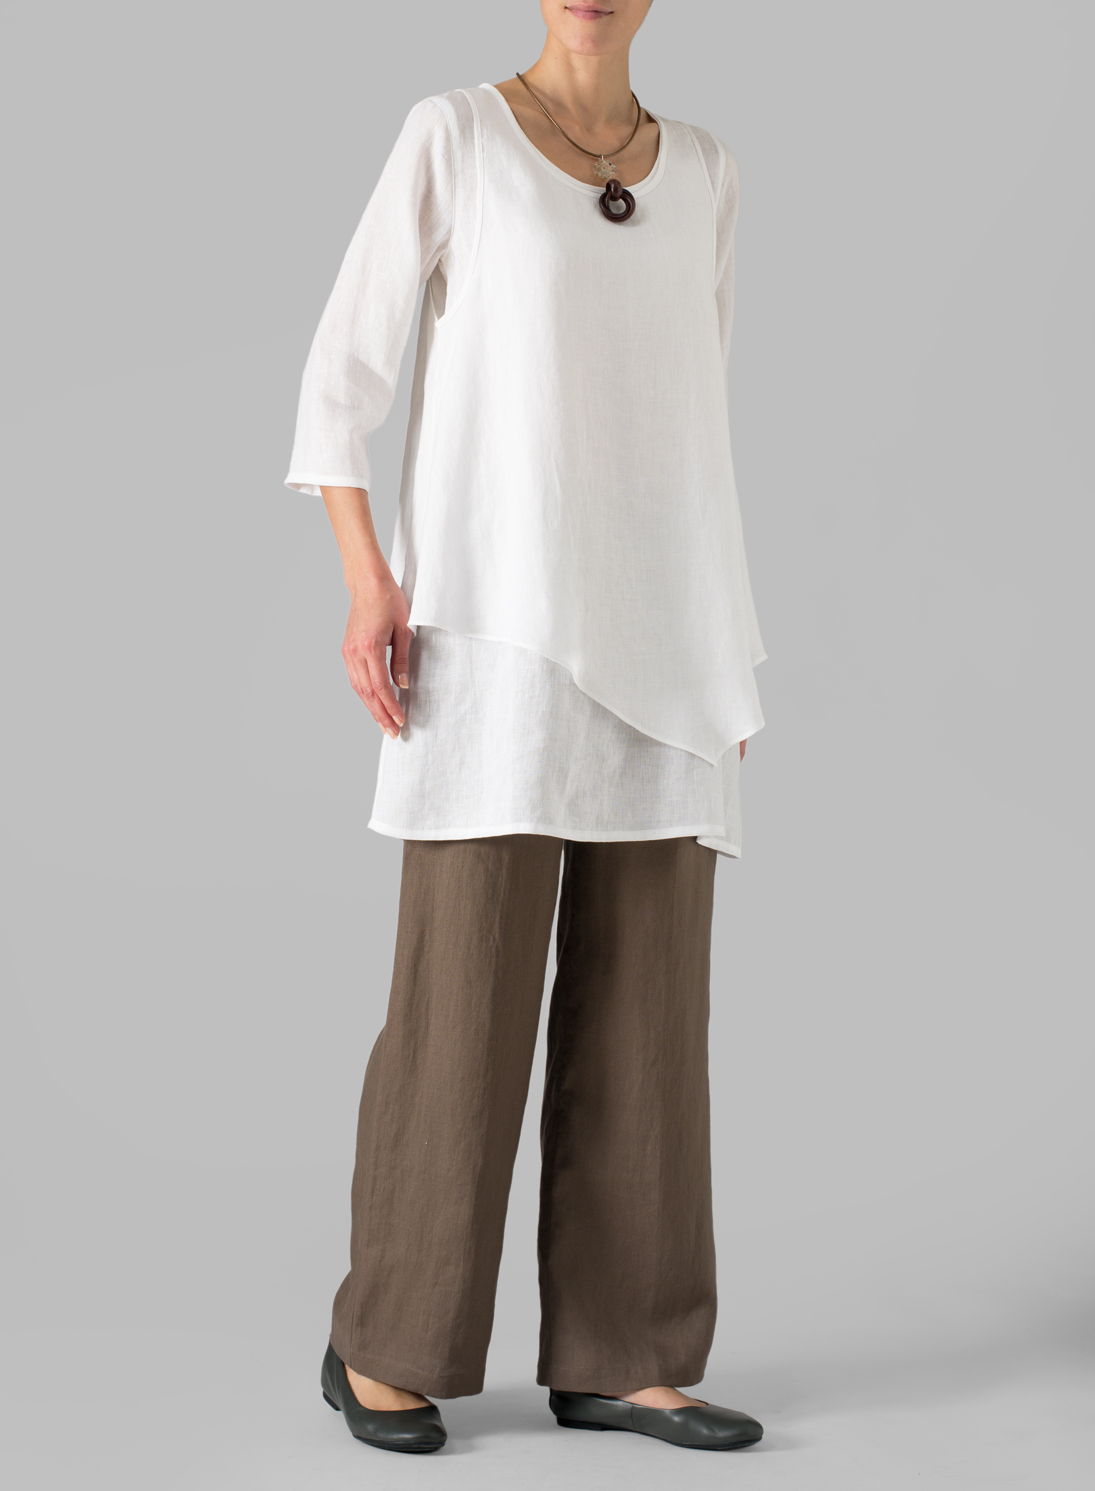 Missy Clothing Linen Double Layer Wrap Top